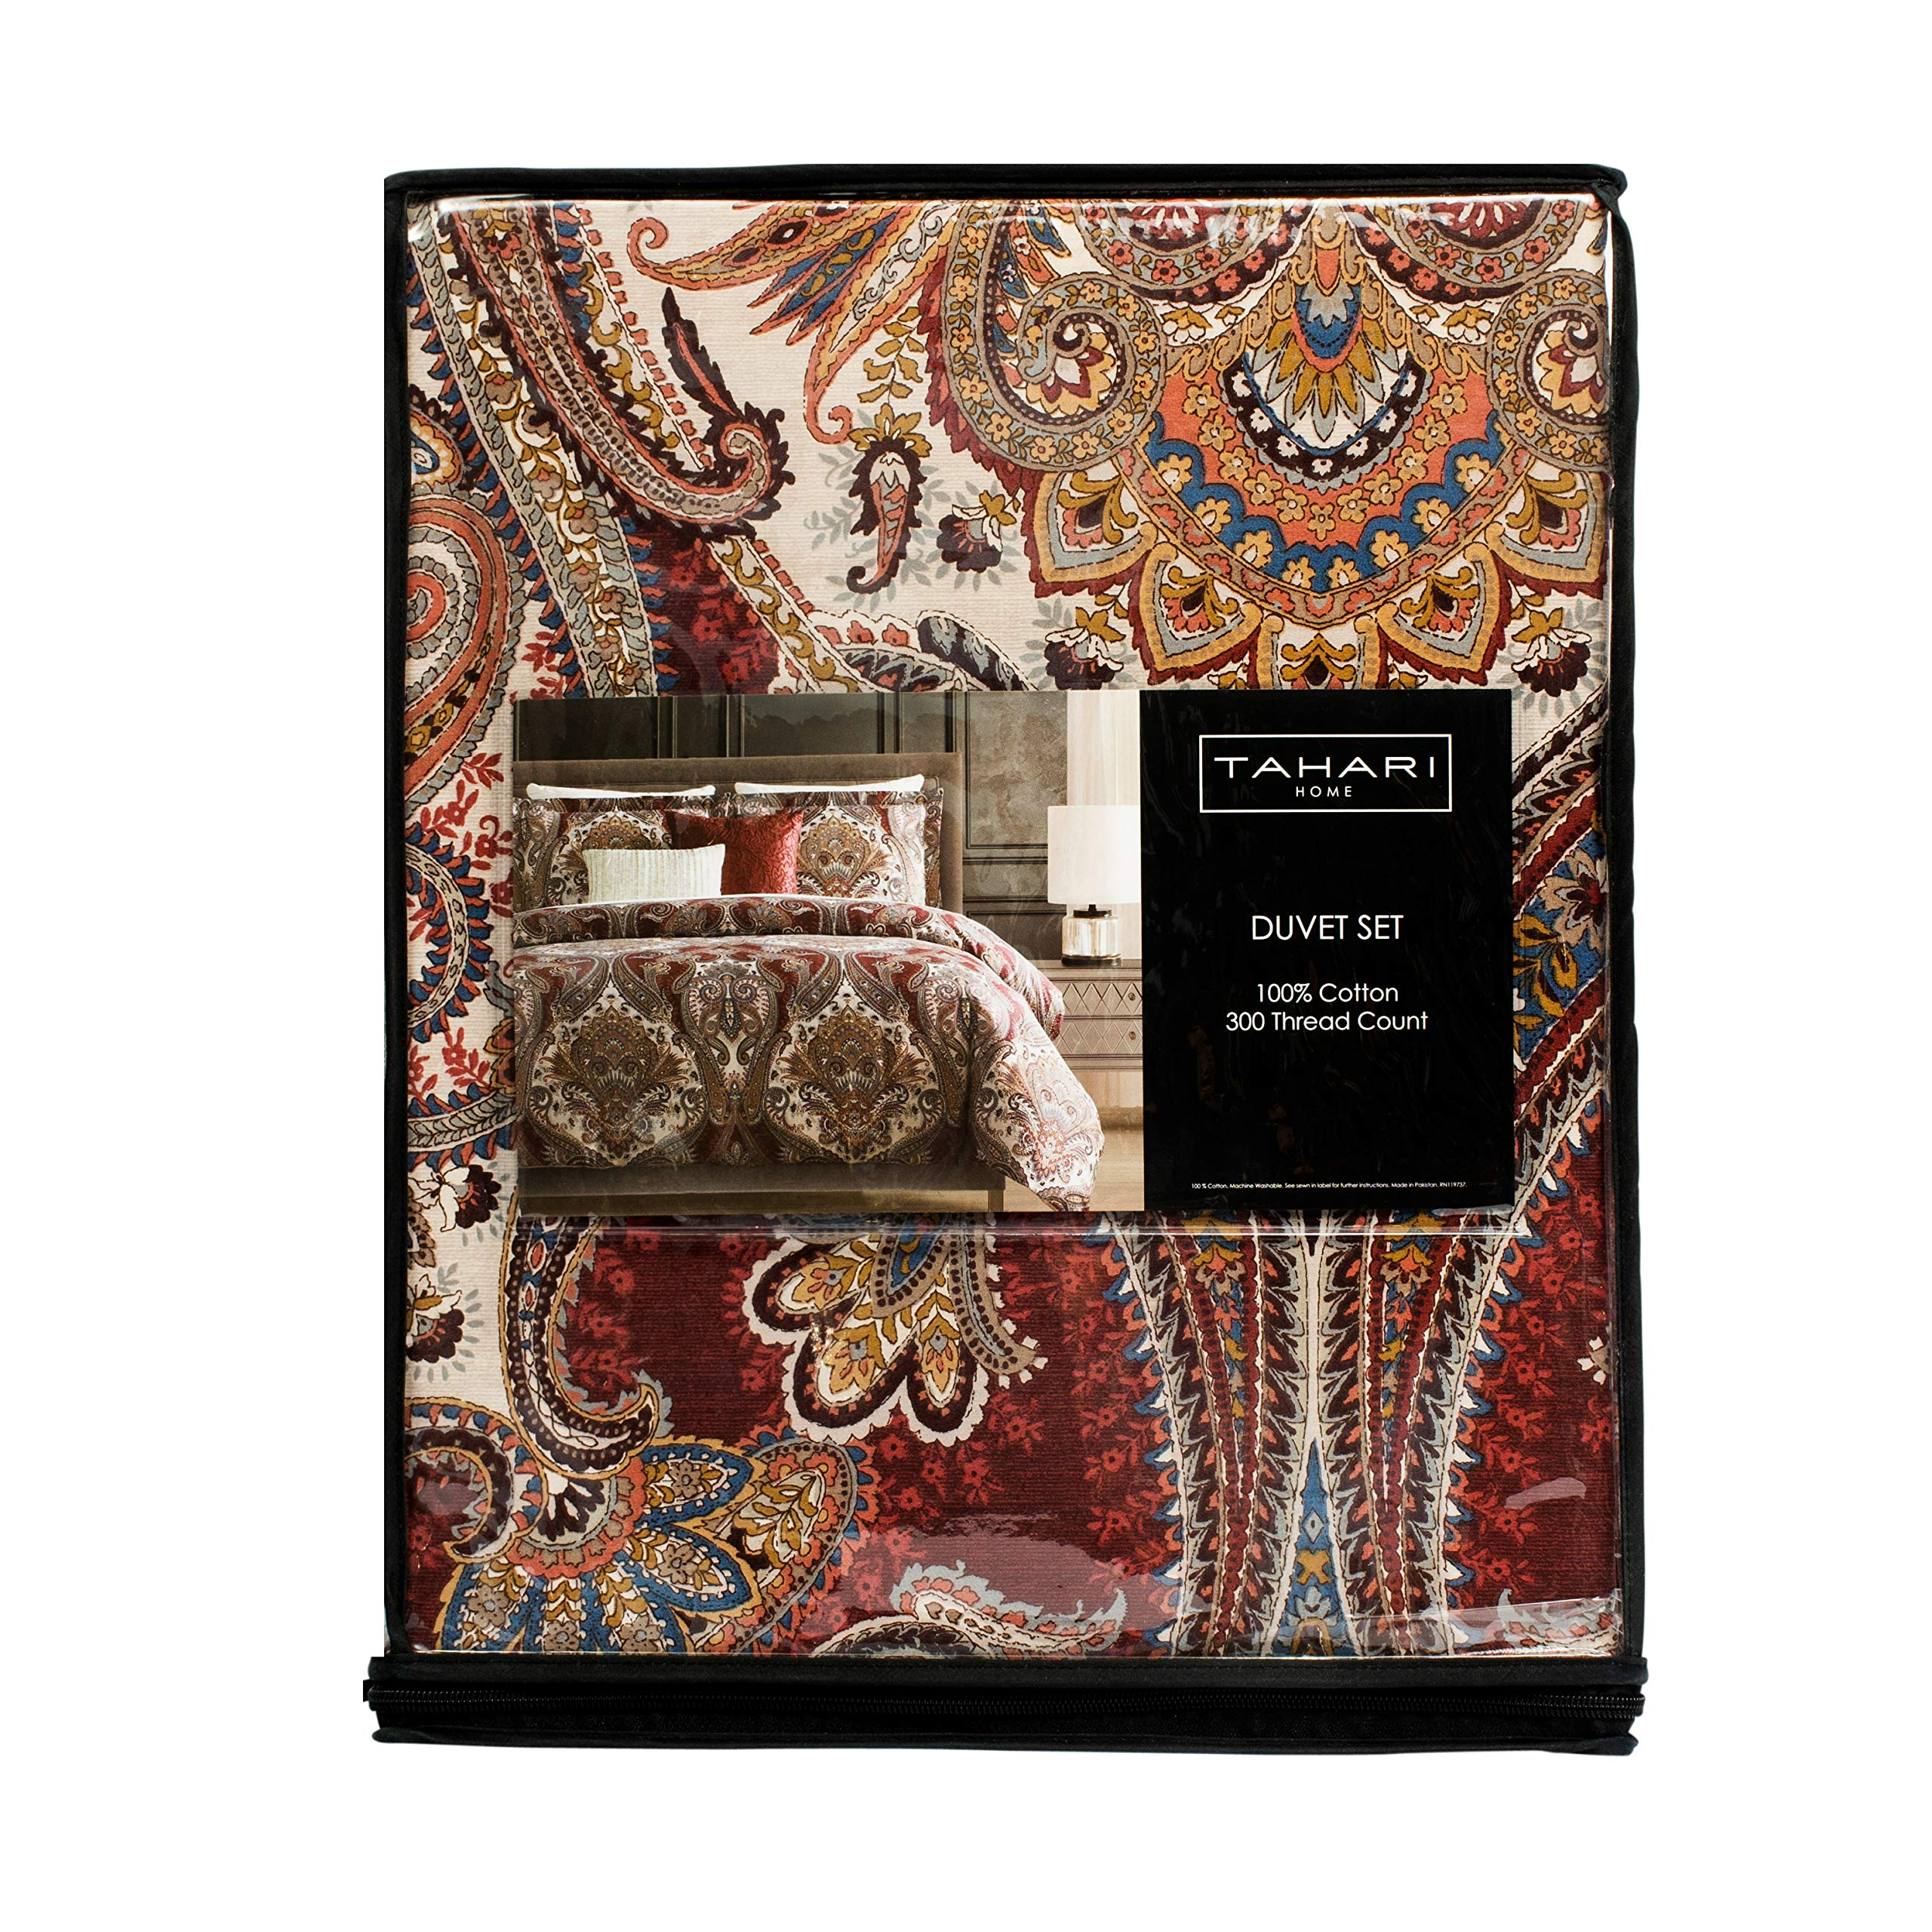 Tahari Home 300 Thread Count Cotton Boho Style Moroccan Paisley Medallion Duvet Cover with 2 Pillow Shams Queen